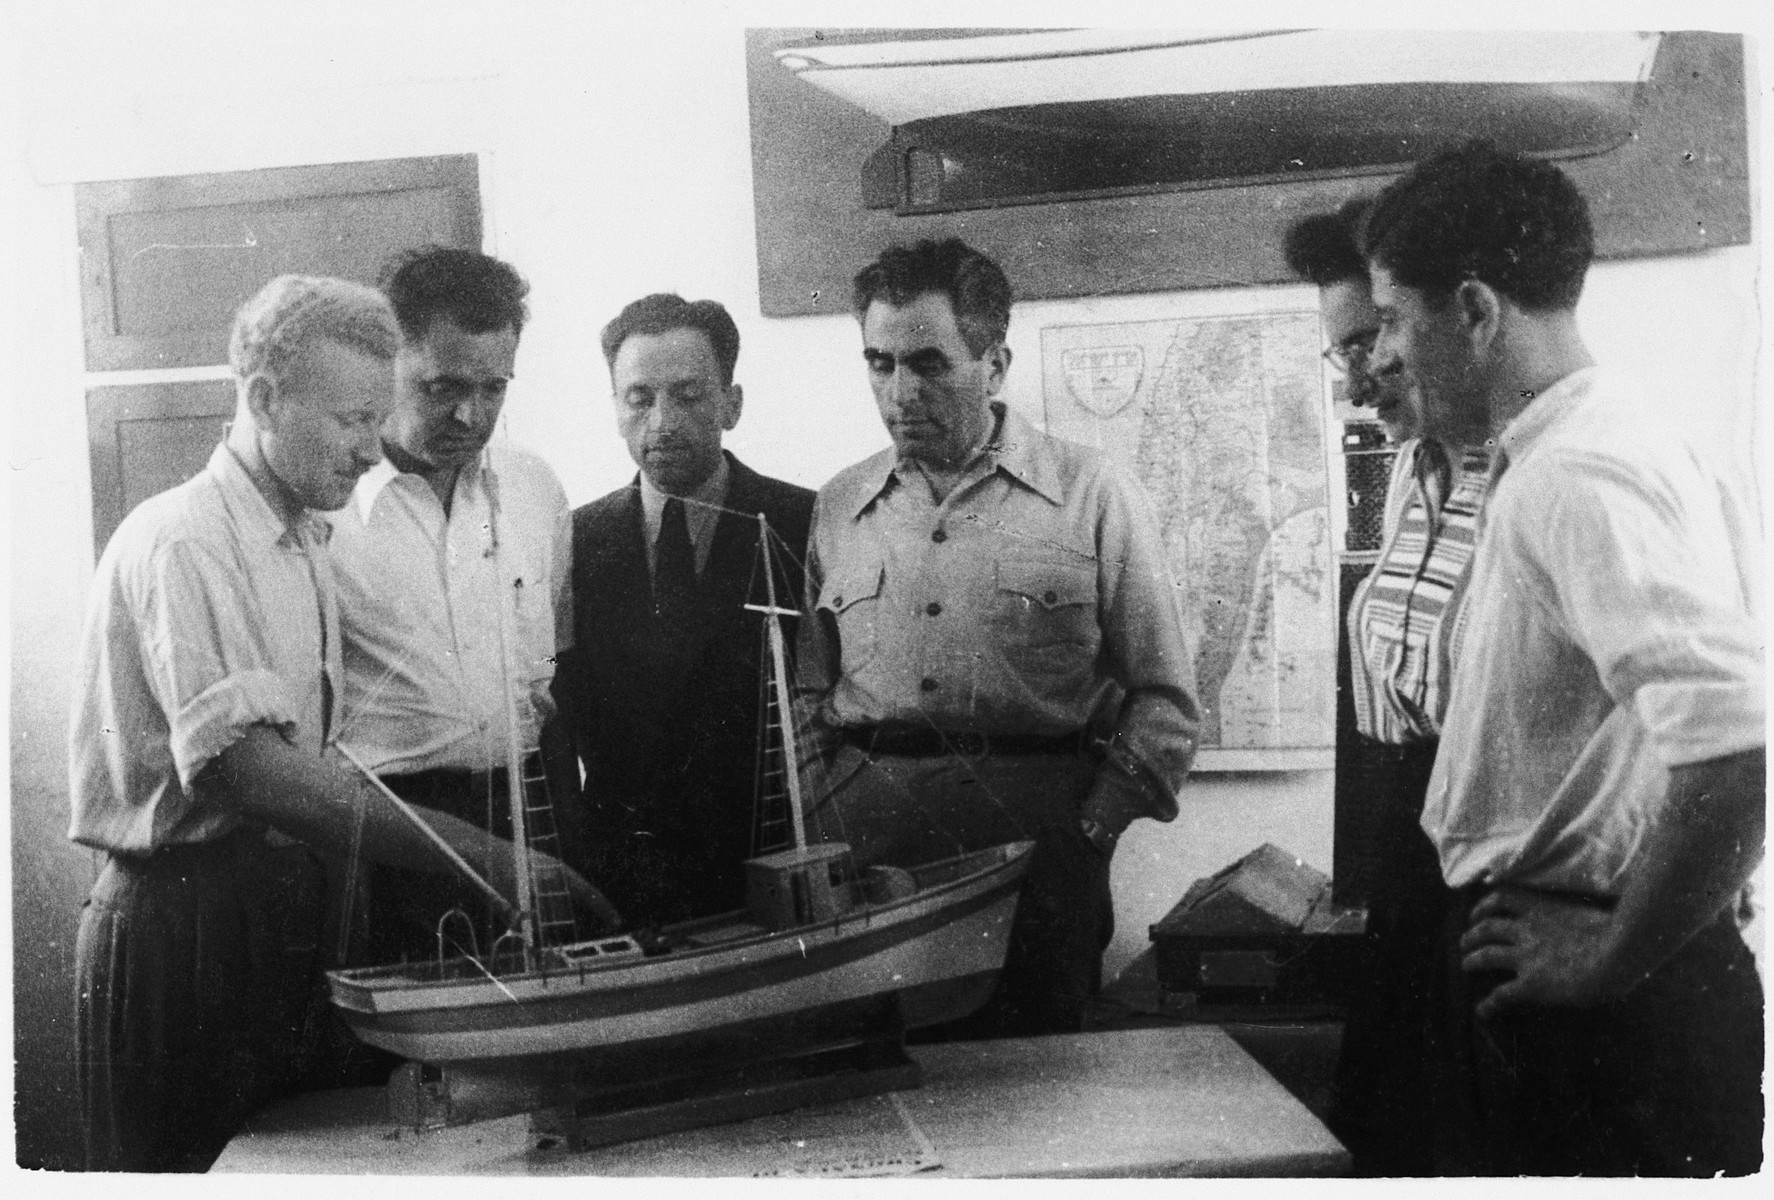 Jewish DPs examine a model of a fishing boat at the Migdalor hachshara, a maritime Zionist collective in Fano, Italy.  Among those pictured are Shmuel Bergson (right) and the leader, Mundek Kramer (left).